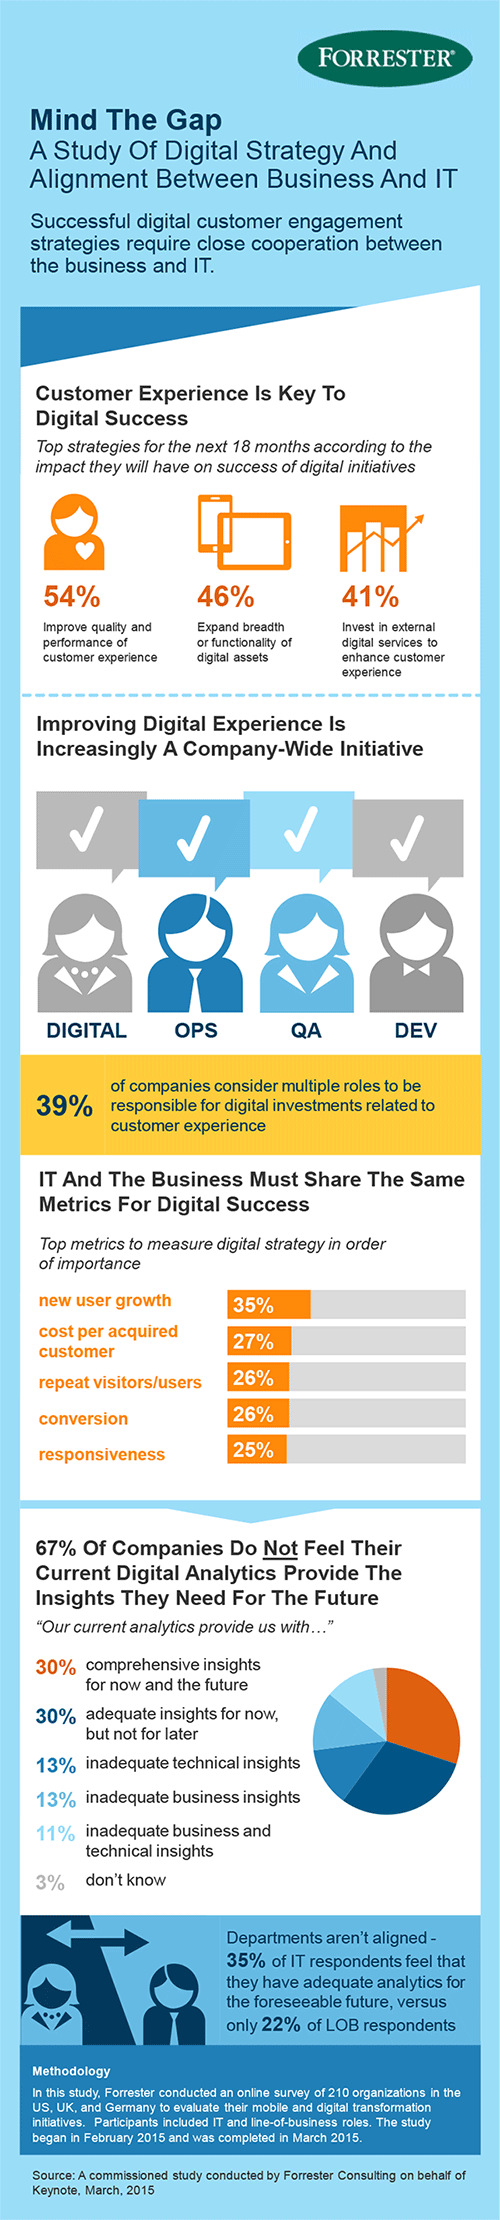 forrester-mind-the-gap-infographic-full